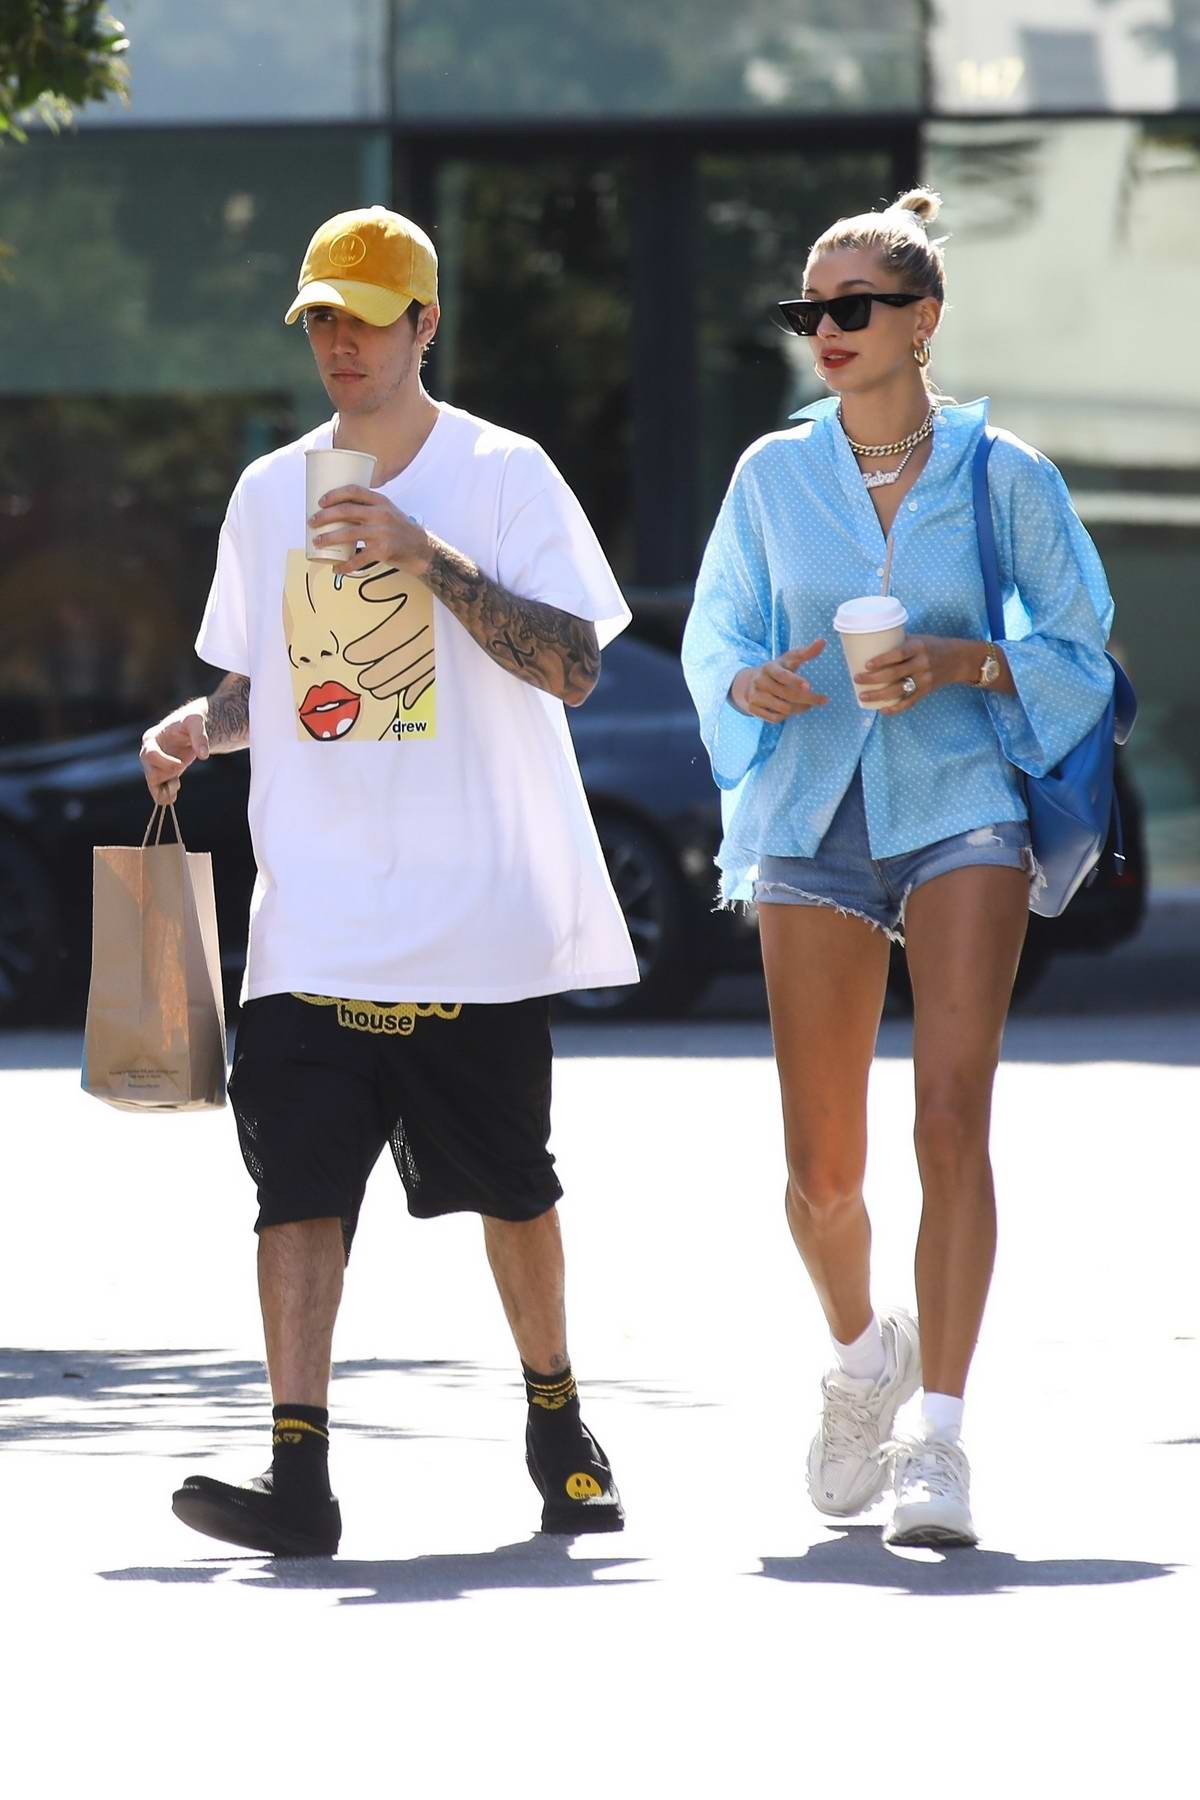 Hailey Baldwin looks stylish while out for some coffee and treats with Justin Bieber in Beverly Hills, Los Angeles